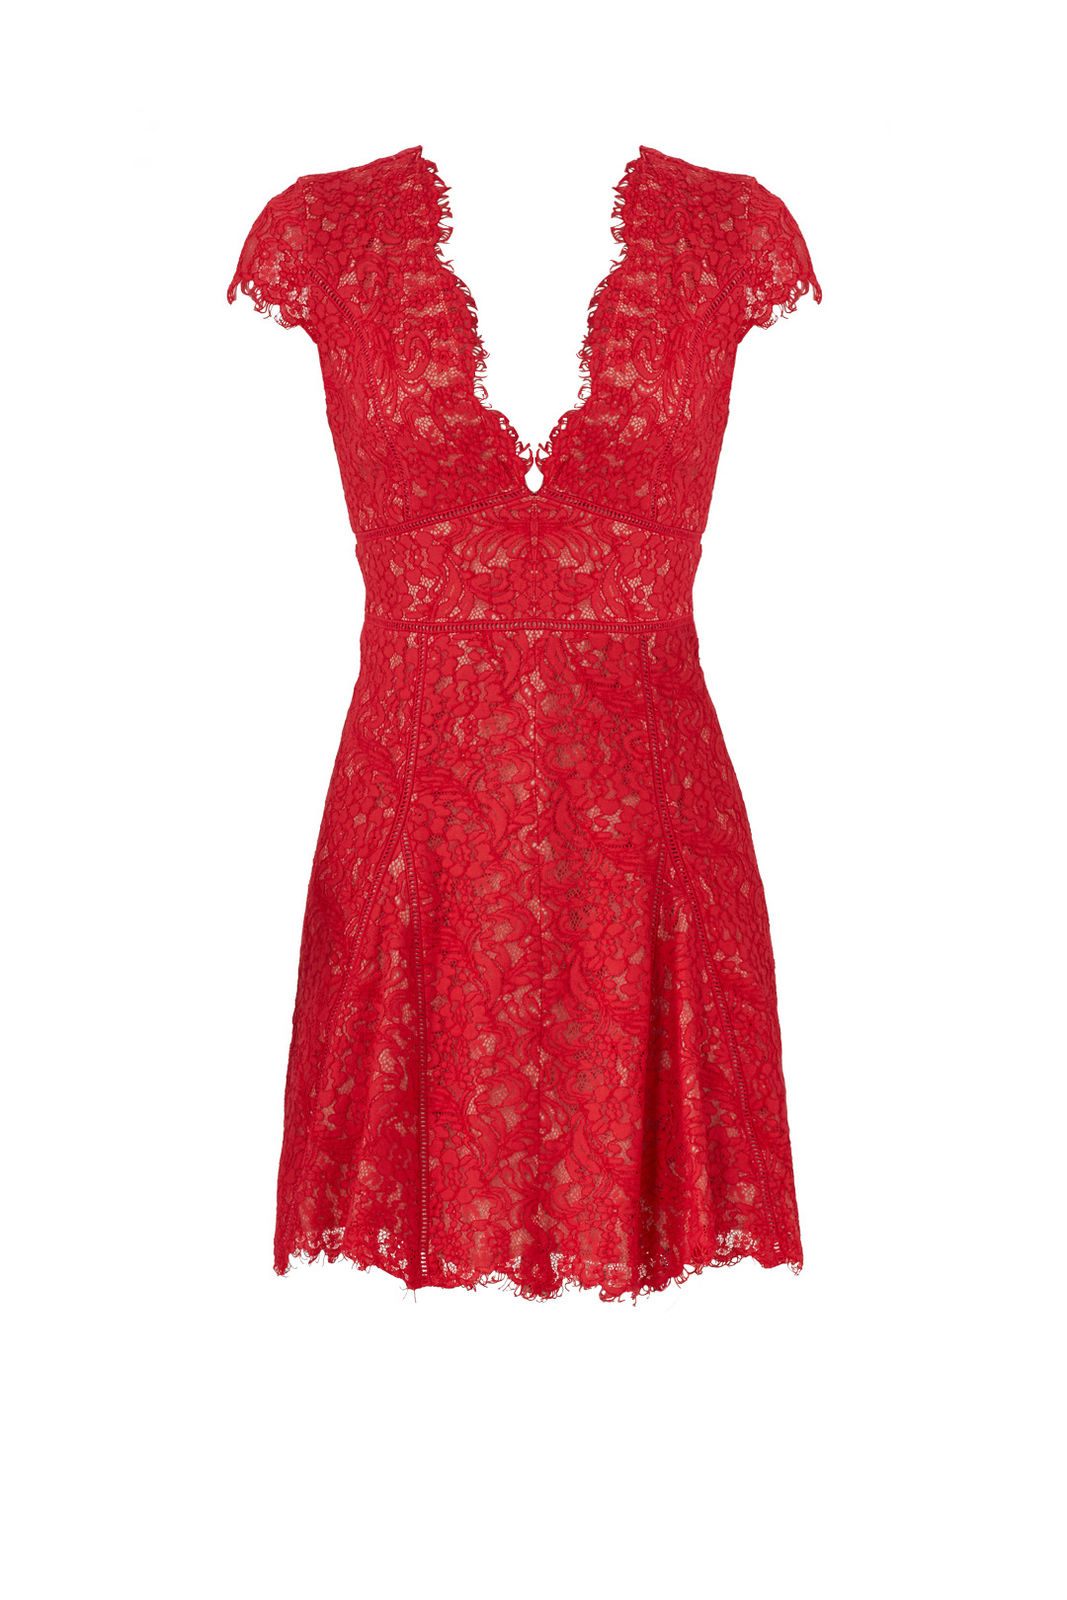 Stylestalker Red Nude Floral Lace Cap Sleeve Pleated XS A-Line Dress  495-